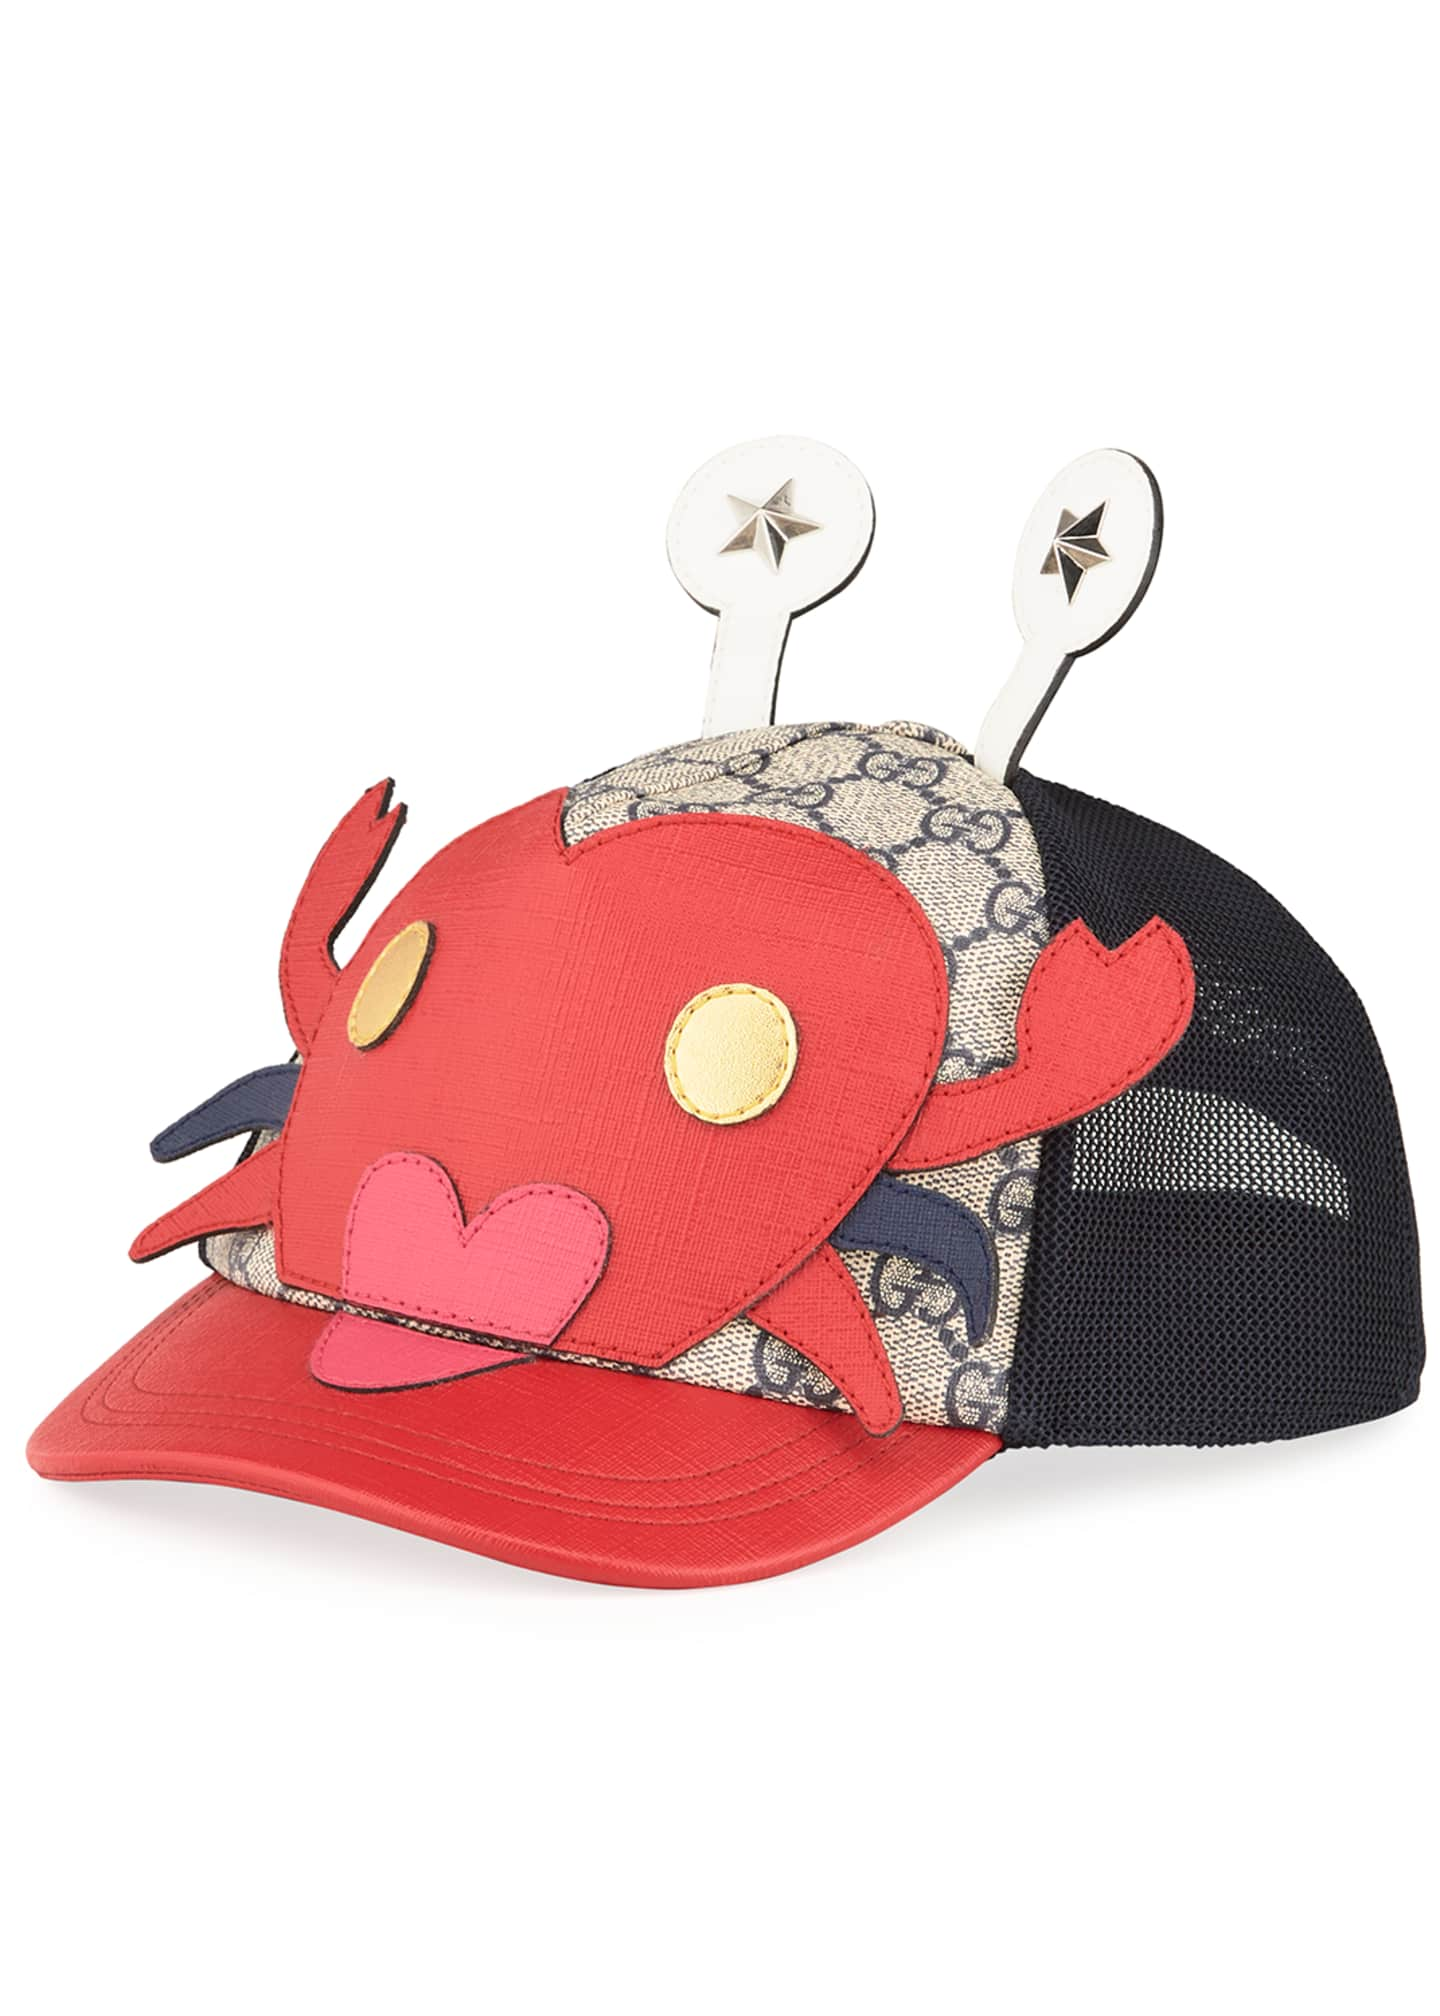 Image 1 of 1: Kid's Embroidered Crab Baseball Hat